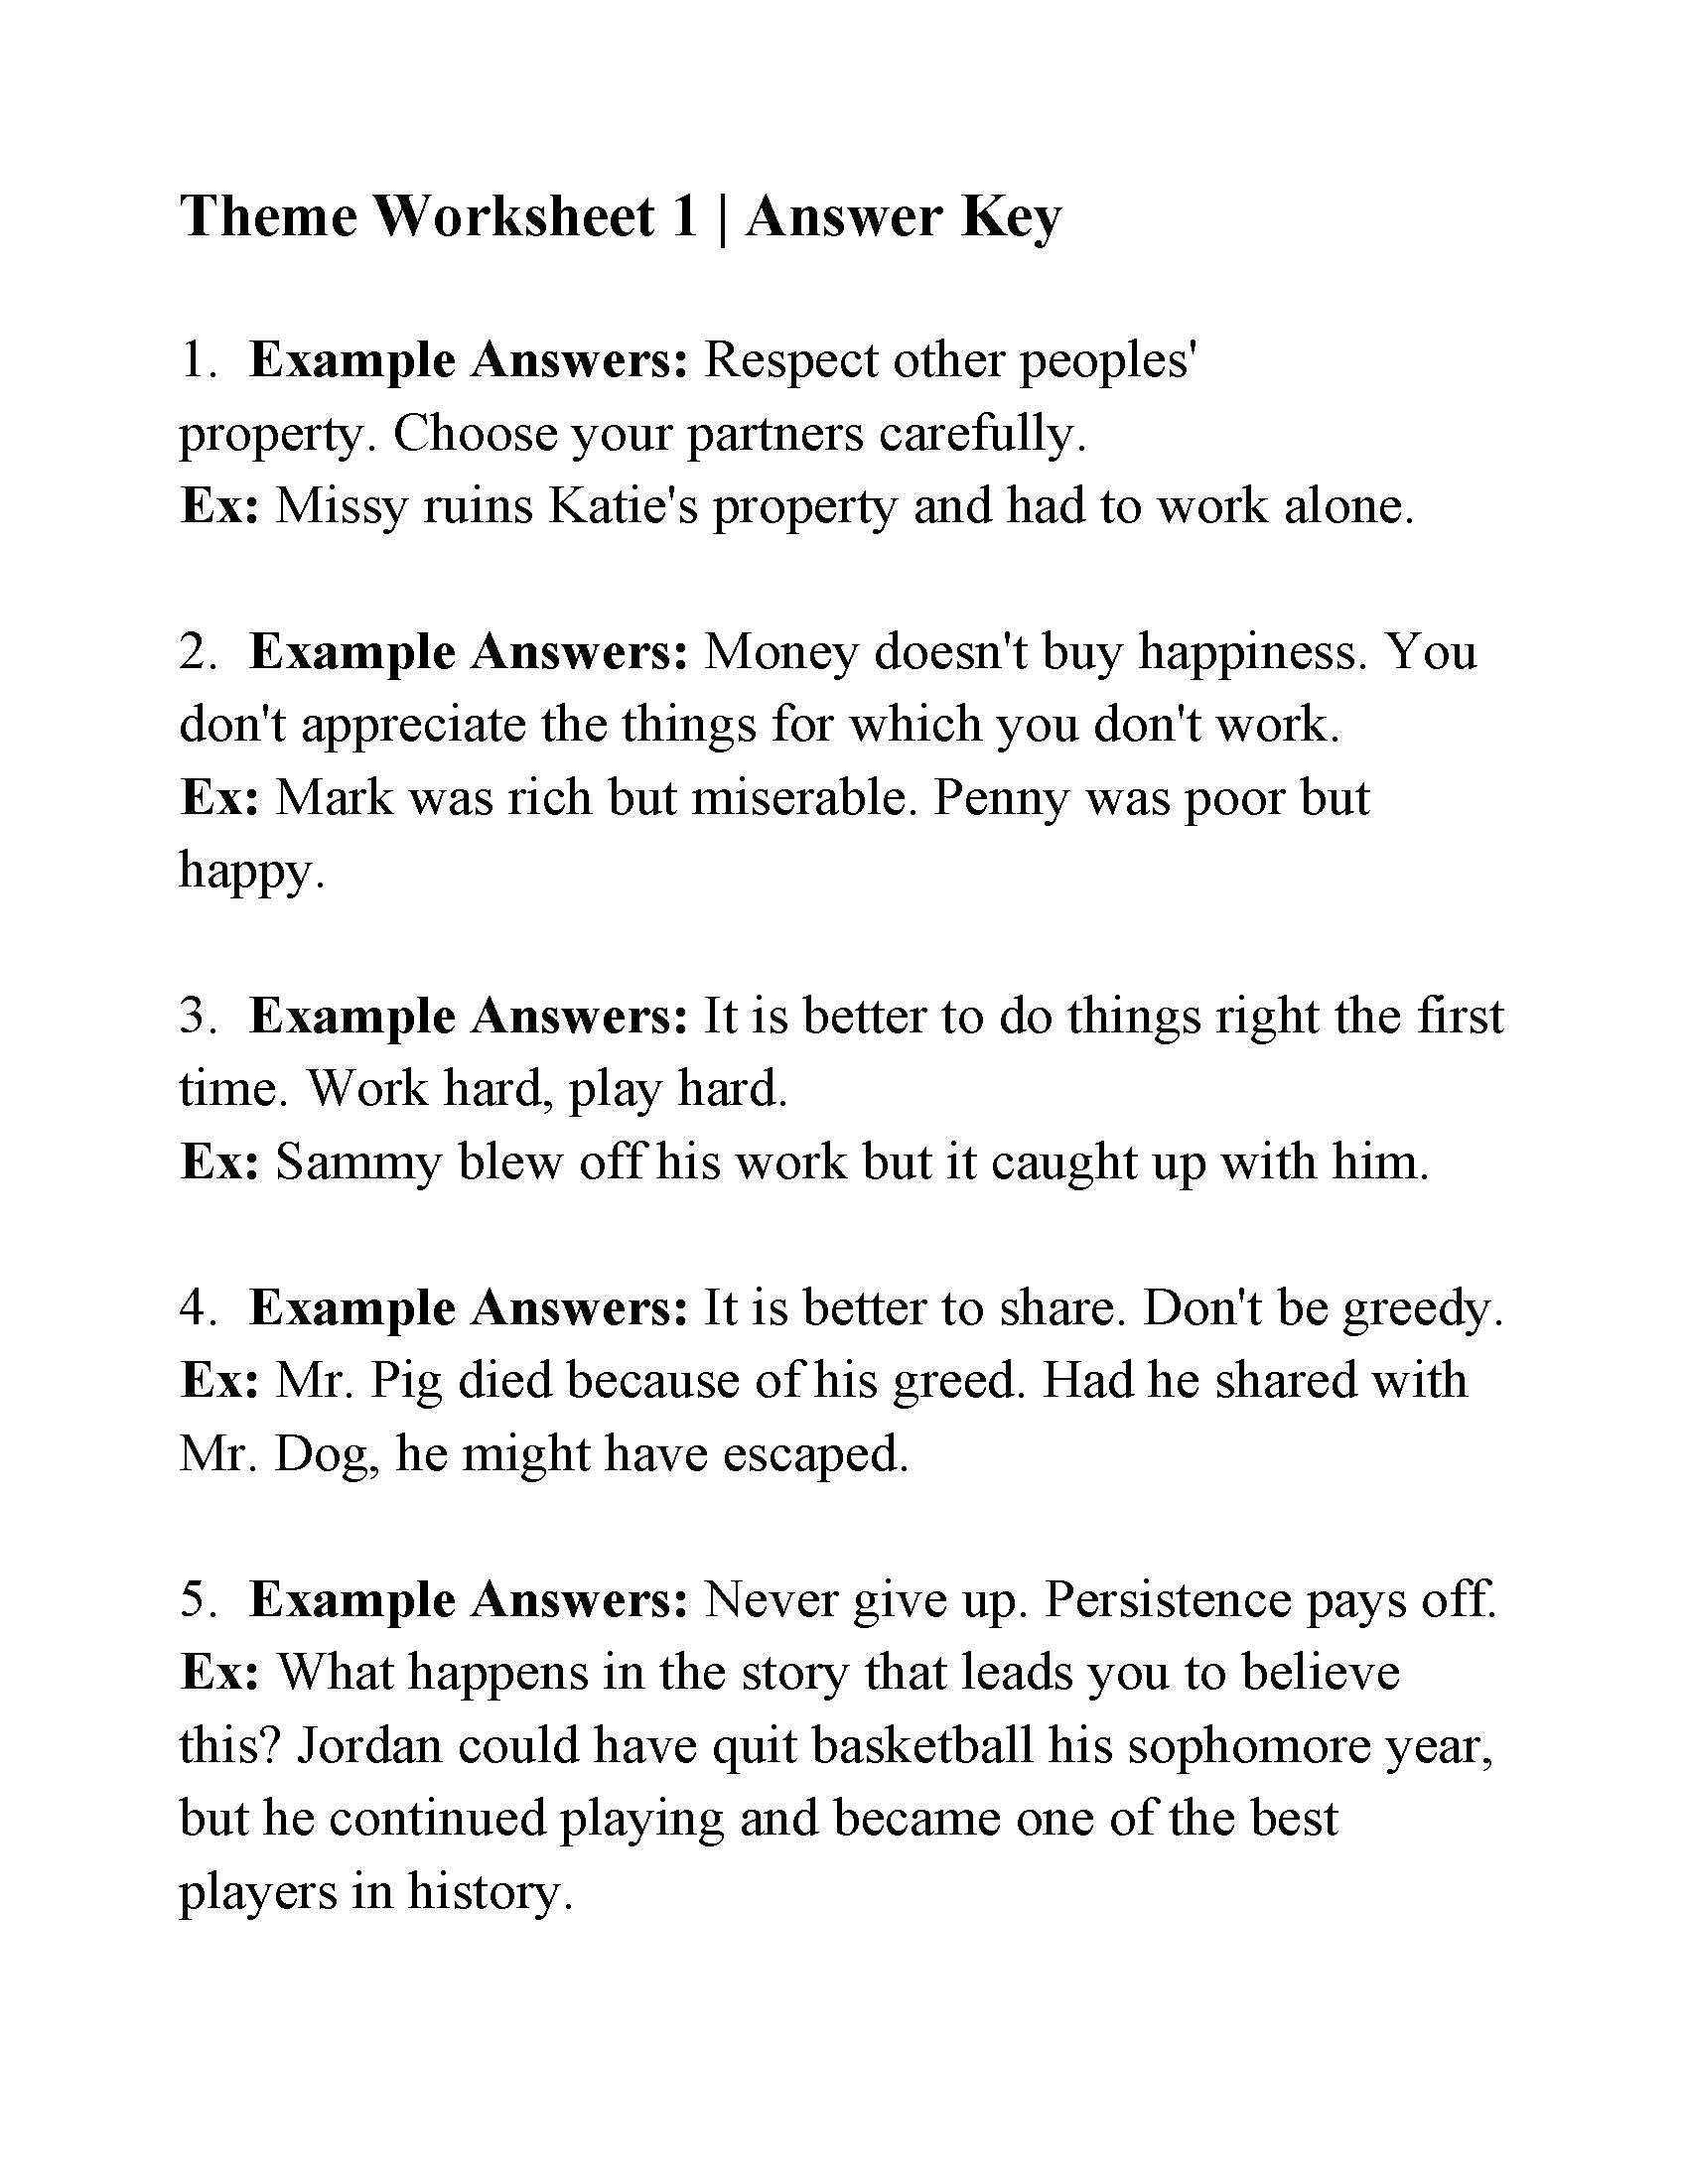 This Is The Answer Key For The Theme Worksheet 1